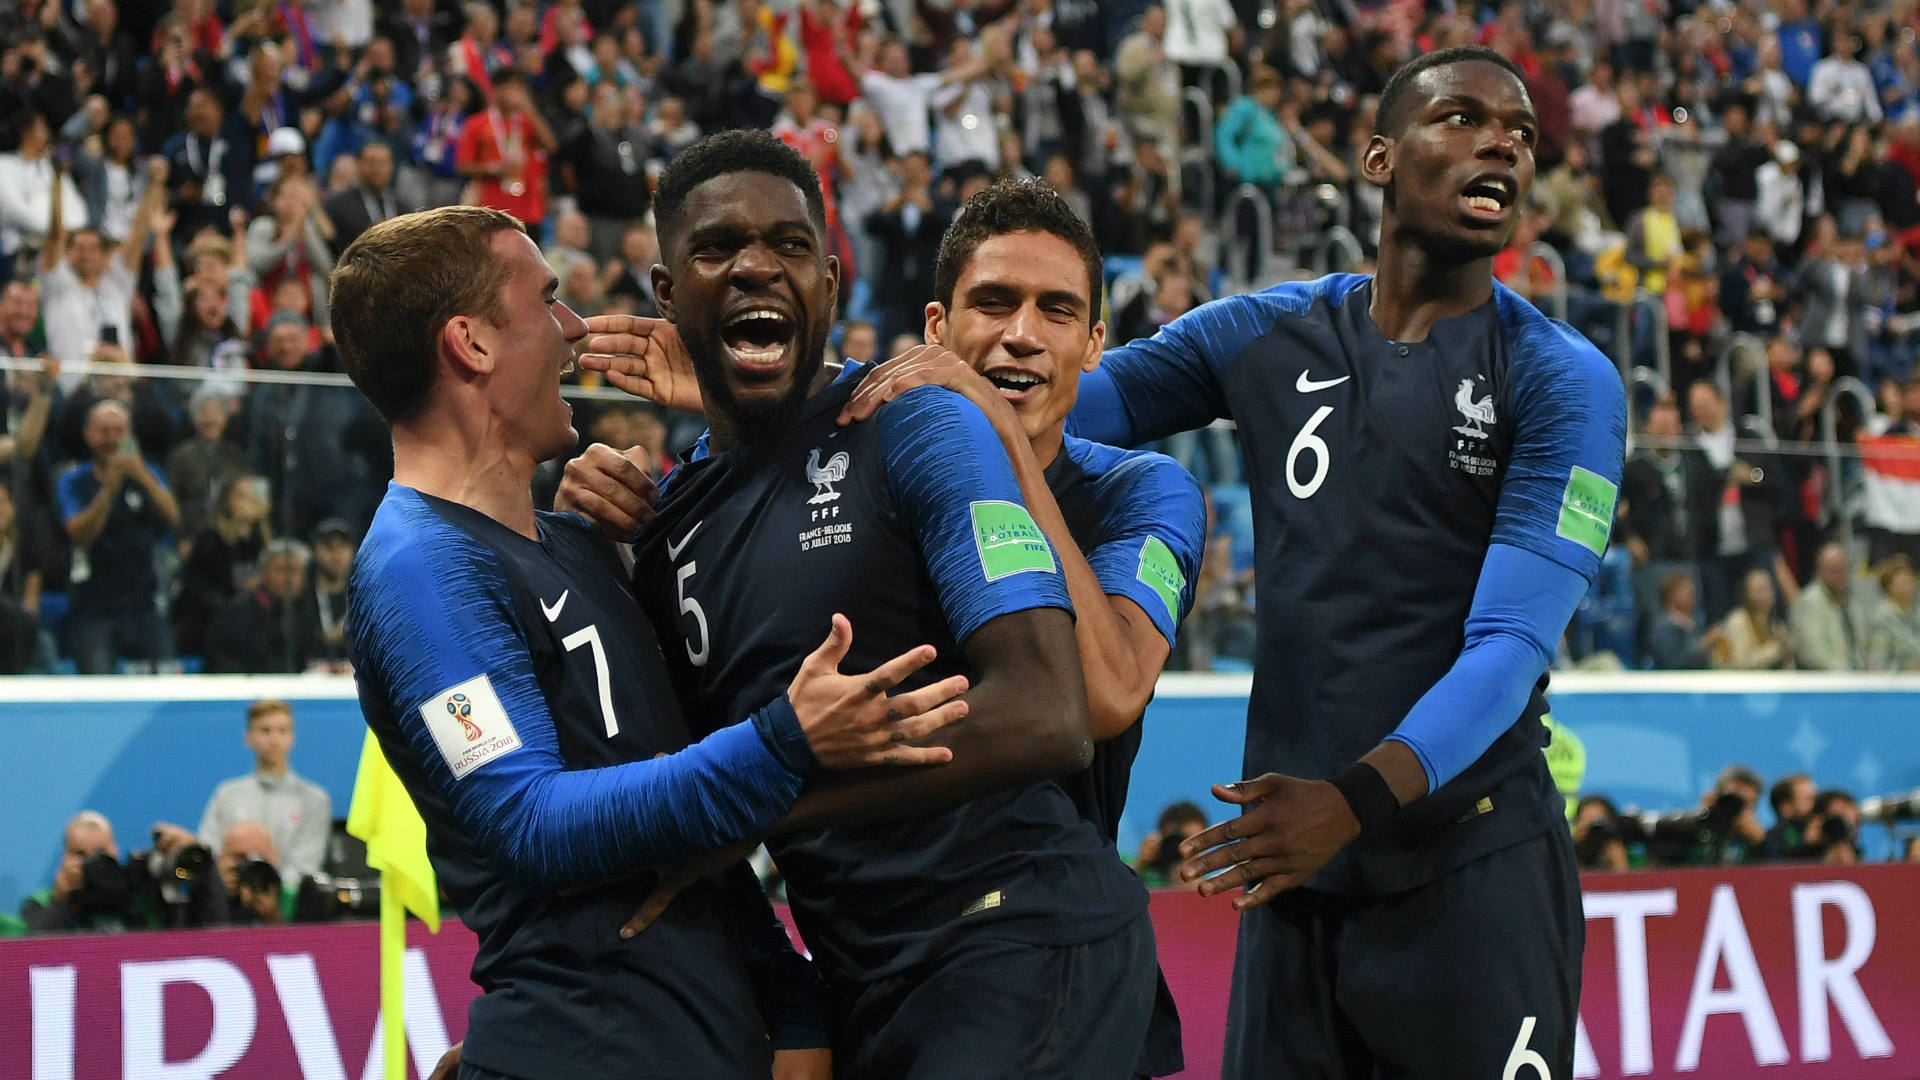 France wins Russia 2018 FIFA World Cup